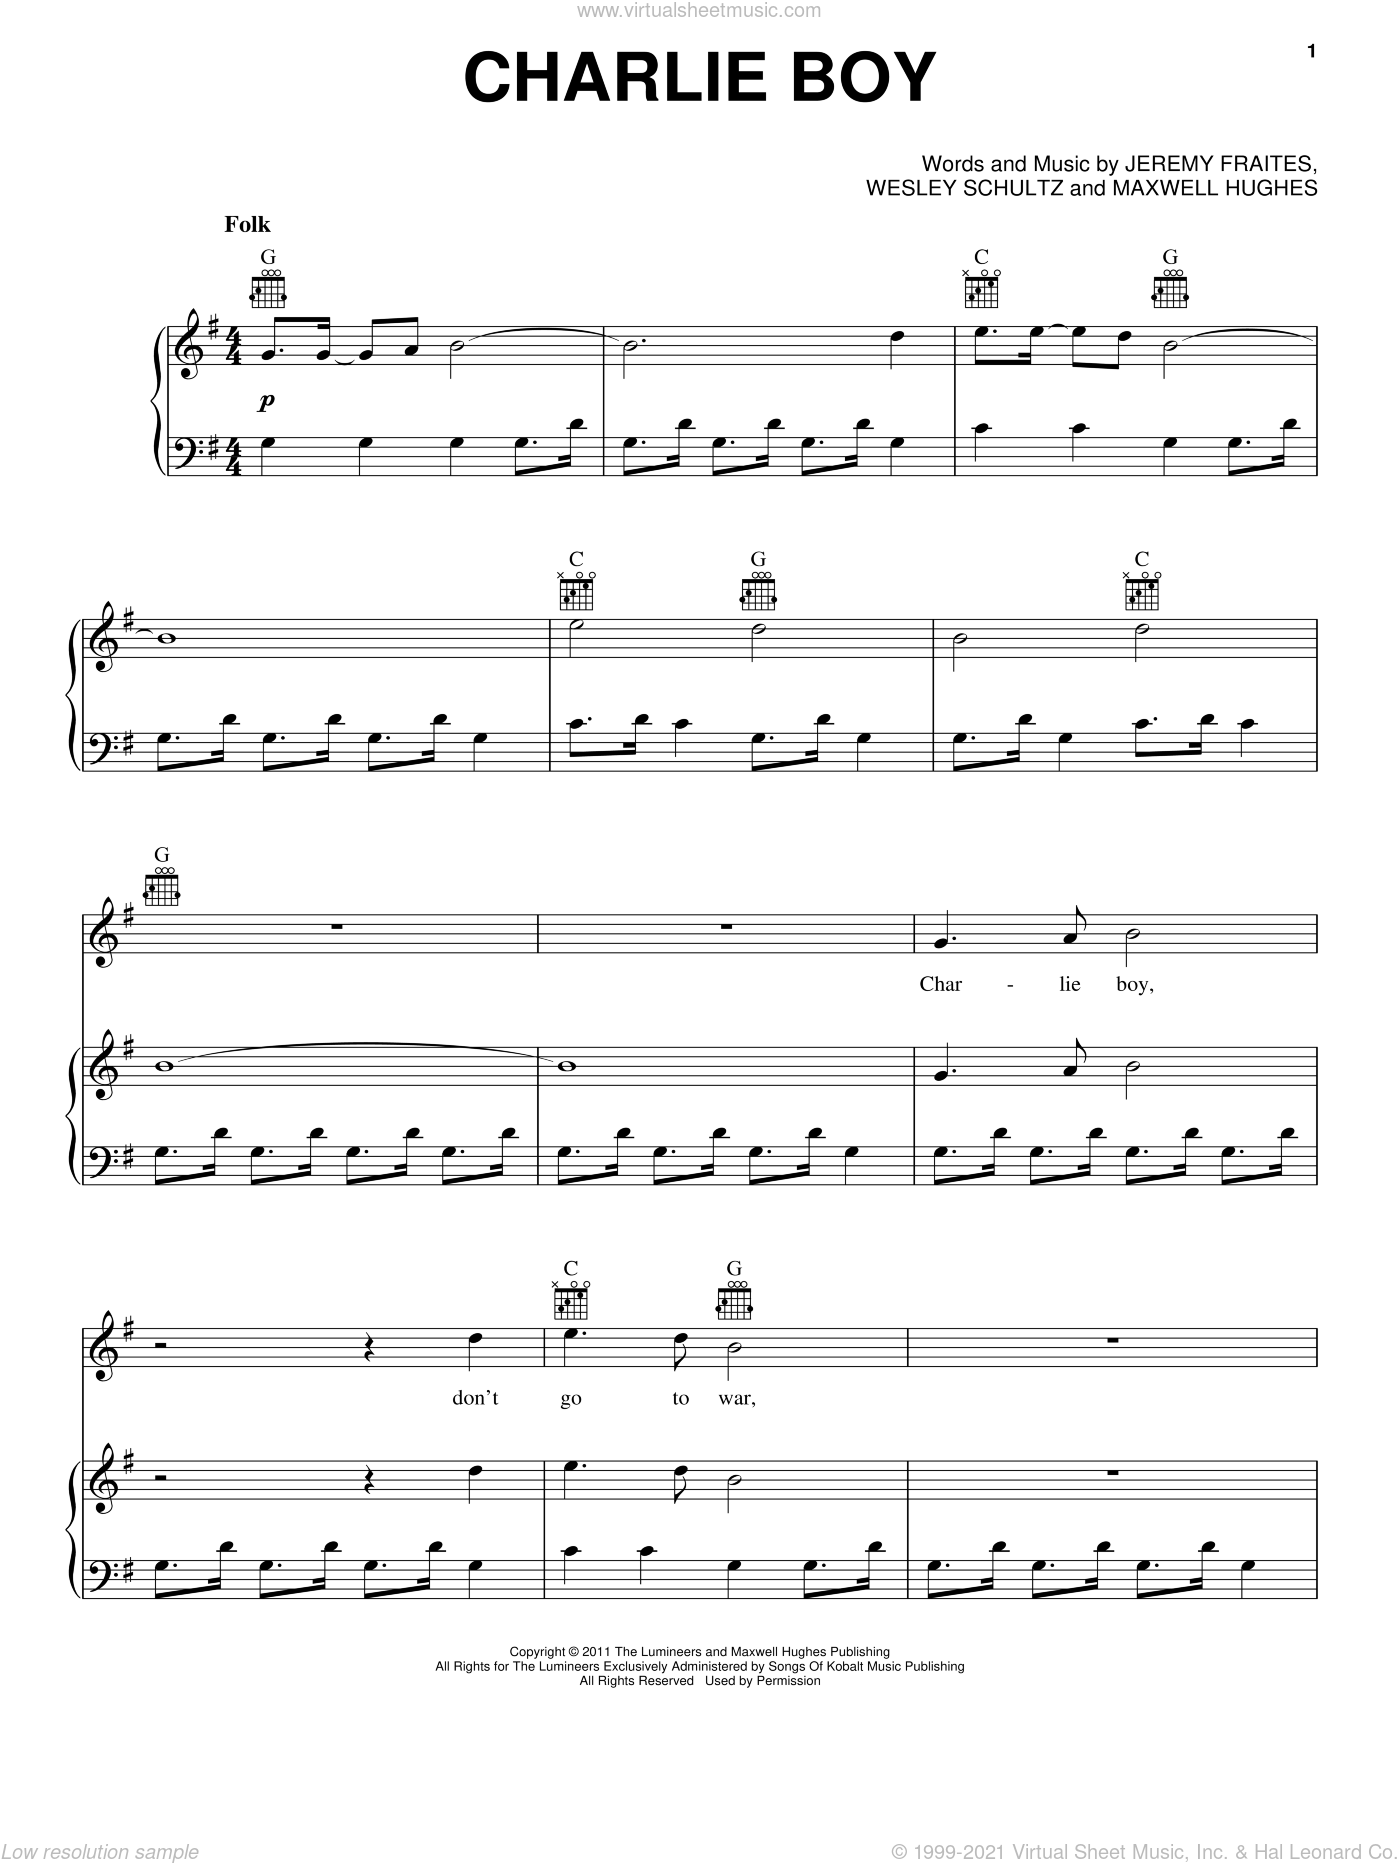 Charlie Boy sheet music for voice, piano or guitar by The Lumineers, Jeremy Fraites, Maxwell Hughes and Wesley Schultz, intermediate skill level